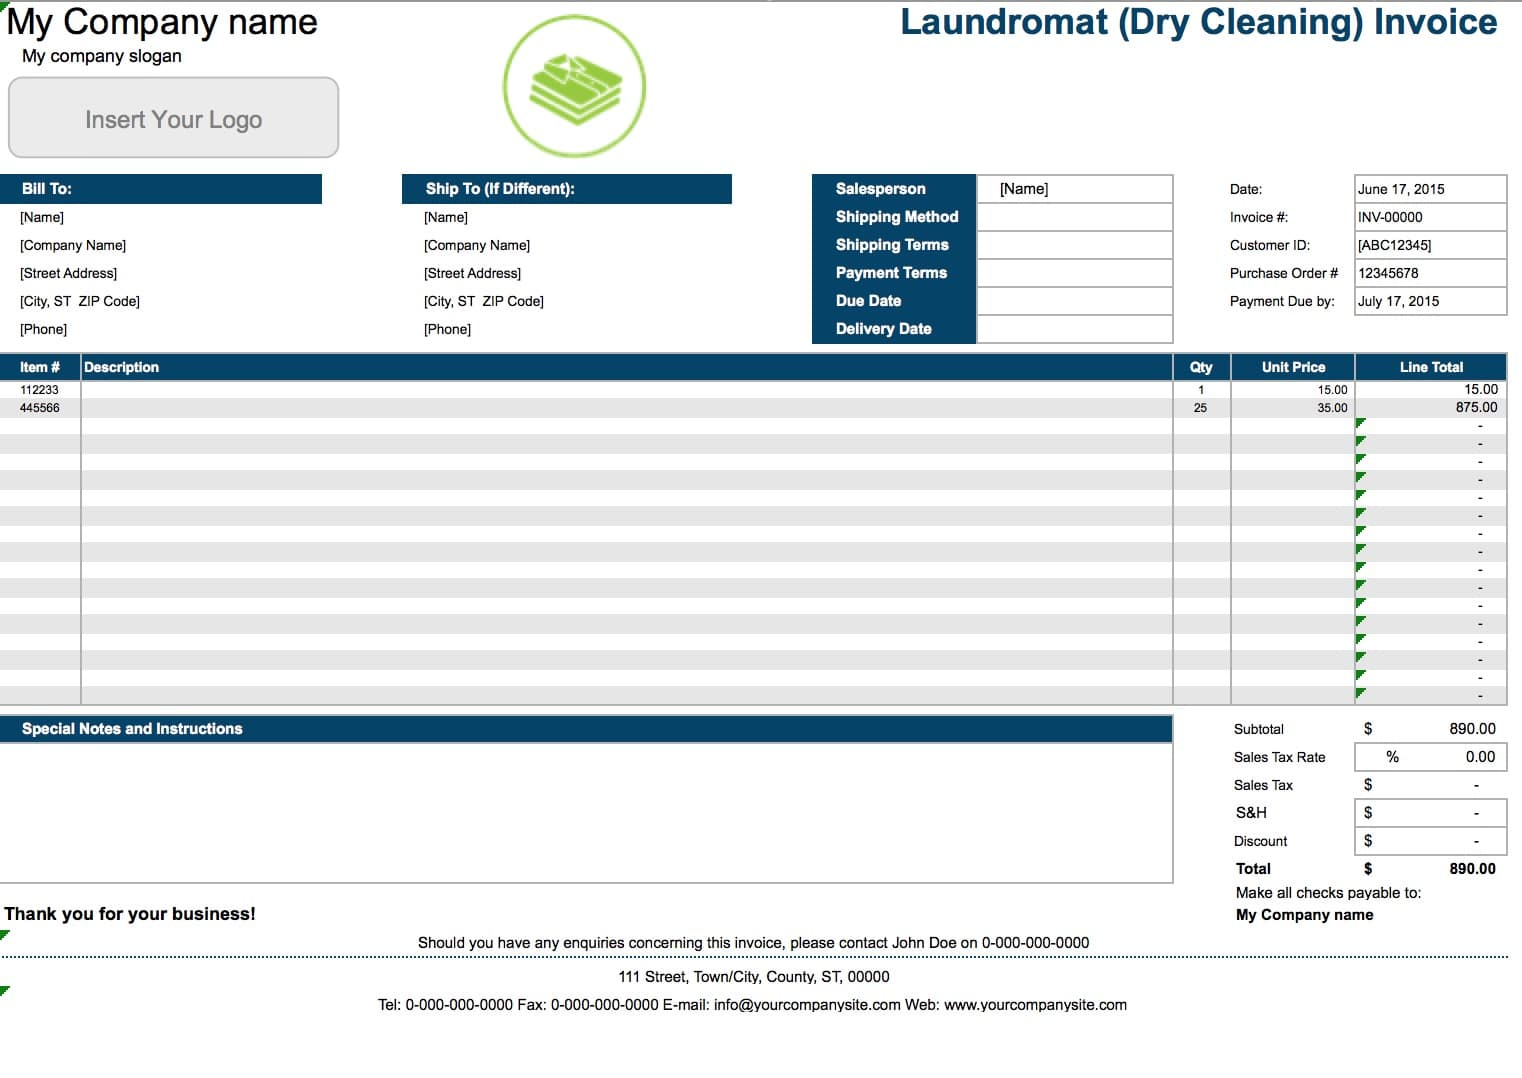 Free Laundromat Dry Cleaning Invoice Template Excel PDF Word - Invoice format in word doc online fabric store